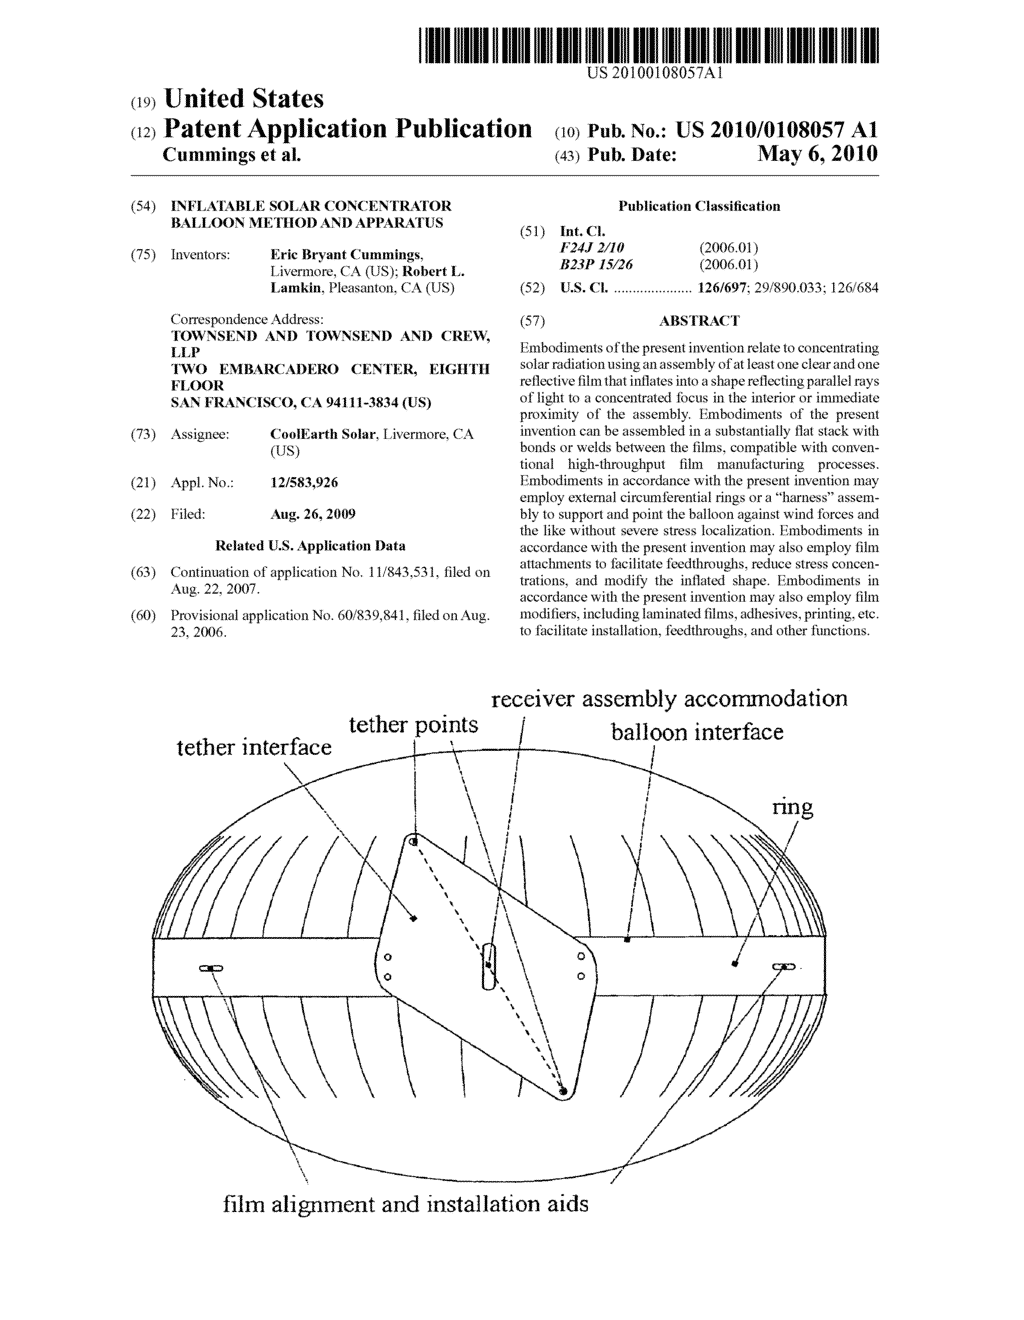 Inflatable solar concentrator balloon method and apparatus - diagram, schematic, and image 01